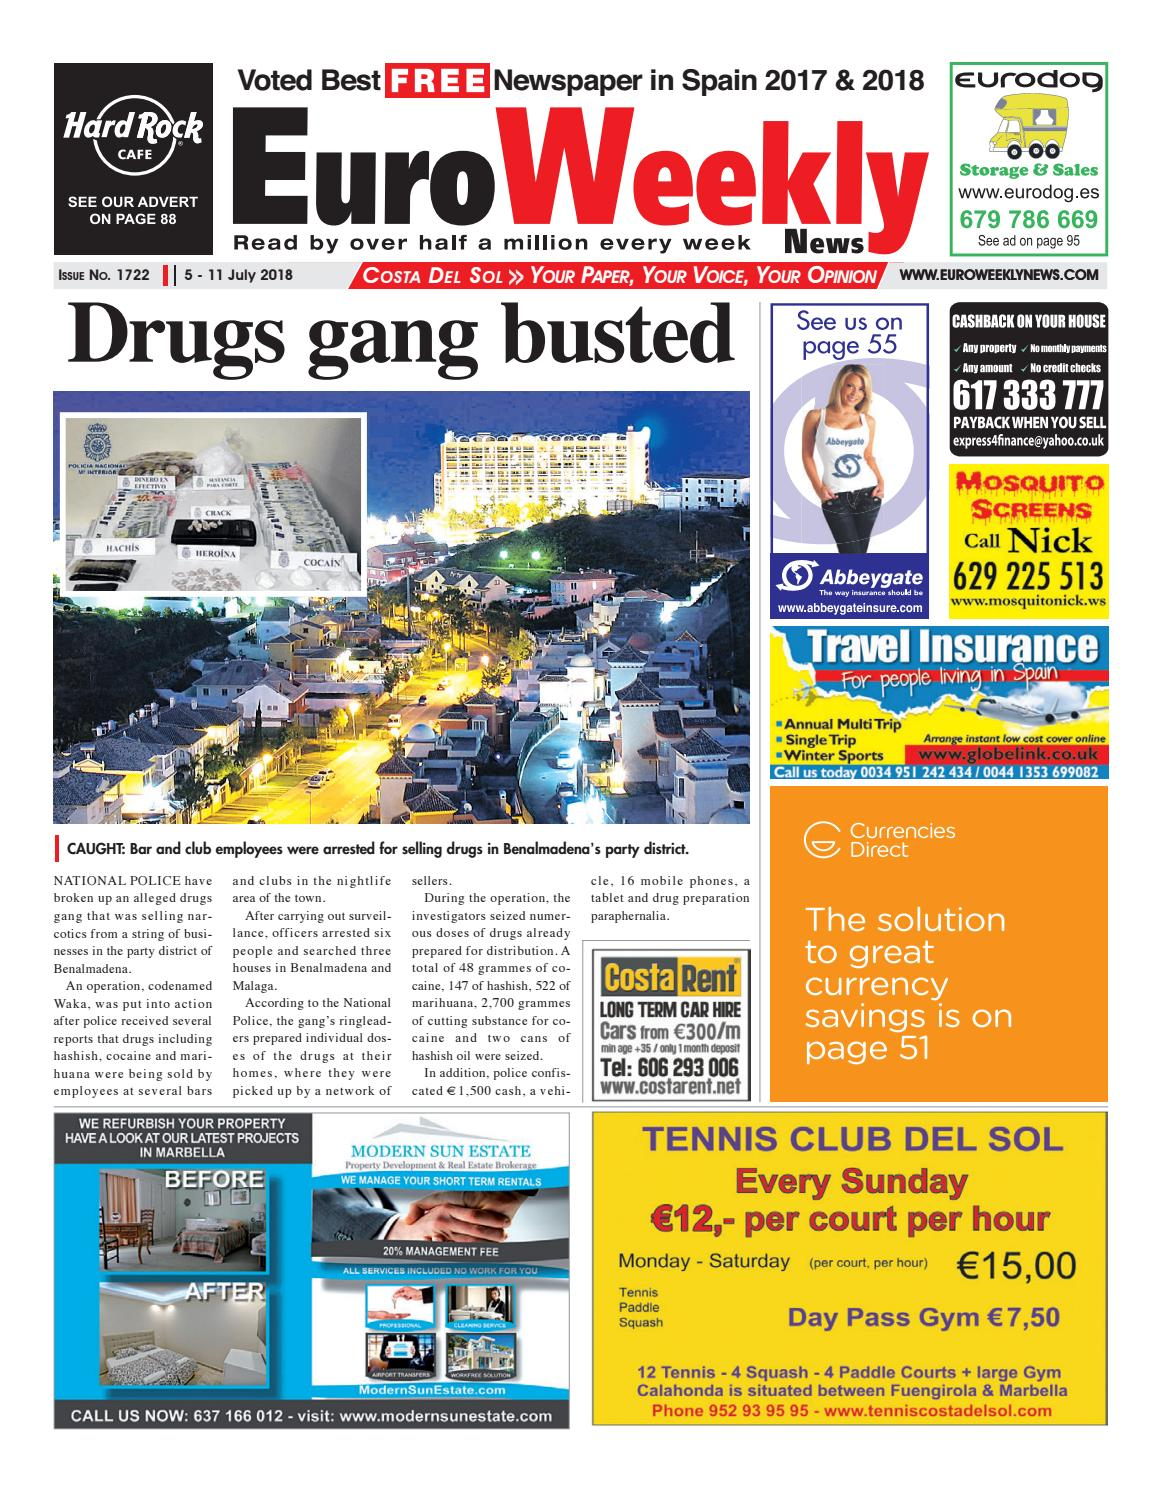 Euro Weekly News - Costa del Sol 5 - 11 July 2018 Issue 1722 by Euro Weekly News Media S.A. - issuu